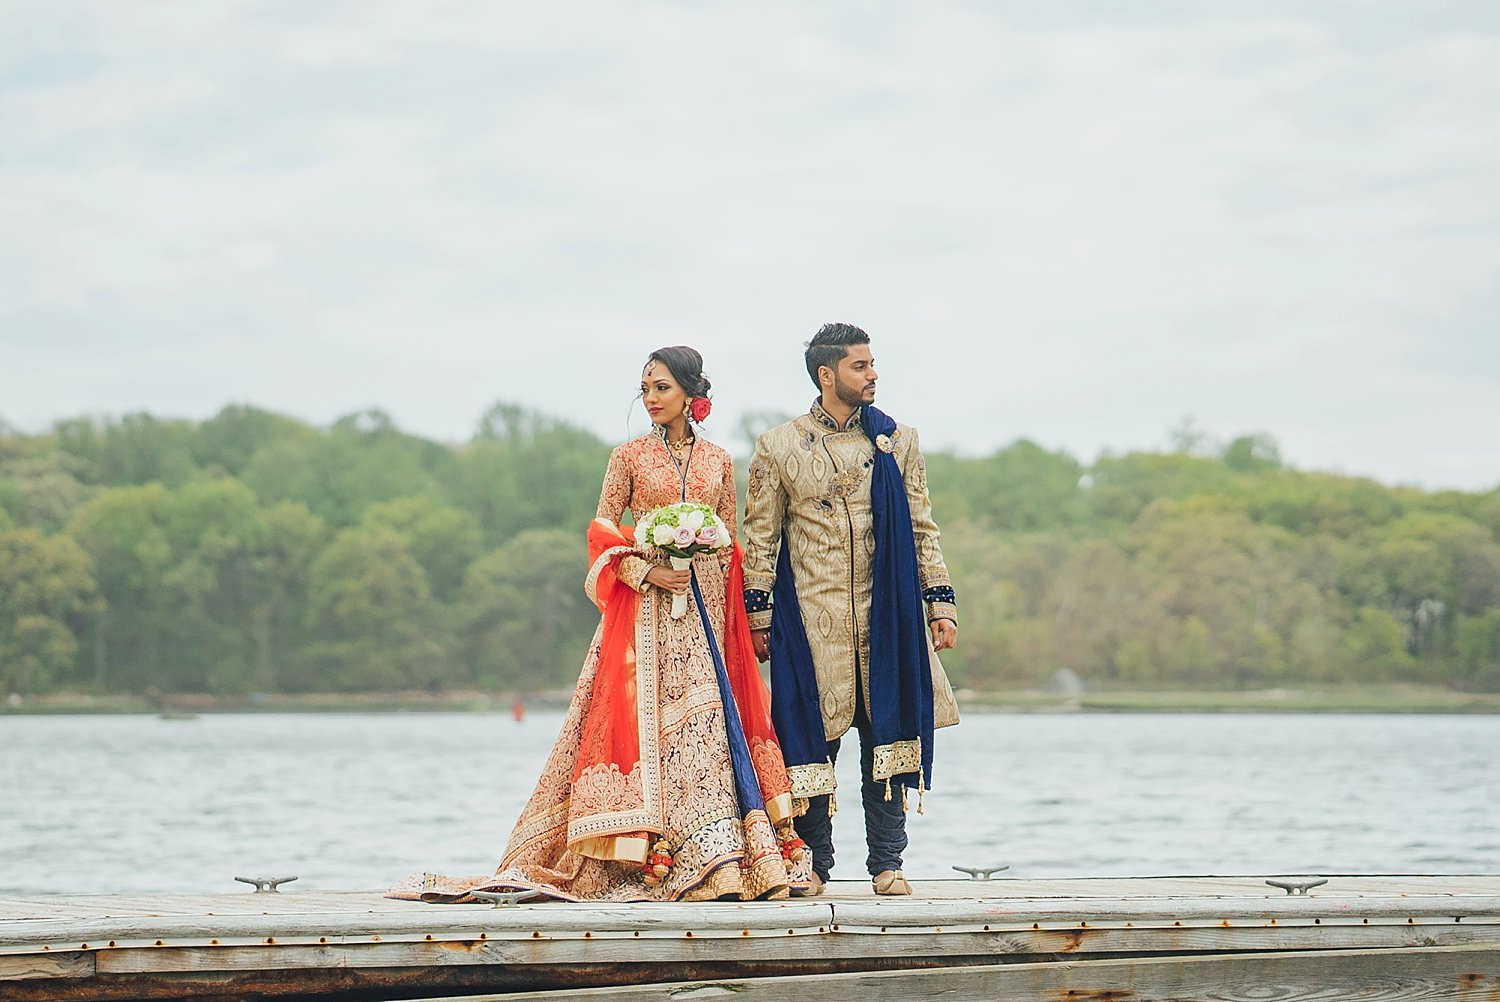 nyc-wedding-photography-nj-tri-state-cinematography-intothestory-by-moo-jae_0366.jpg